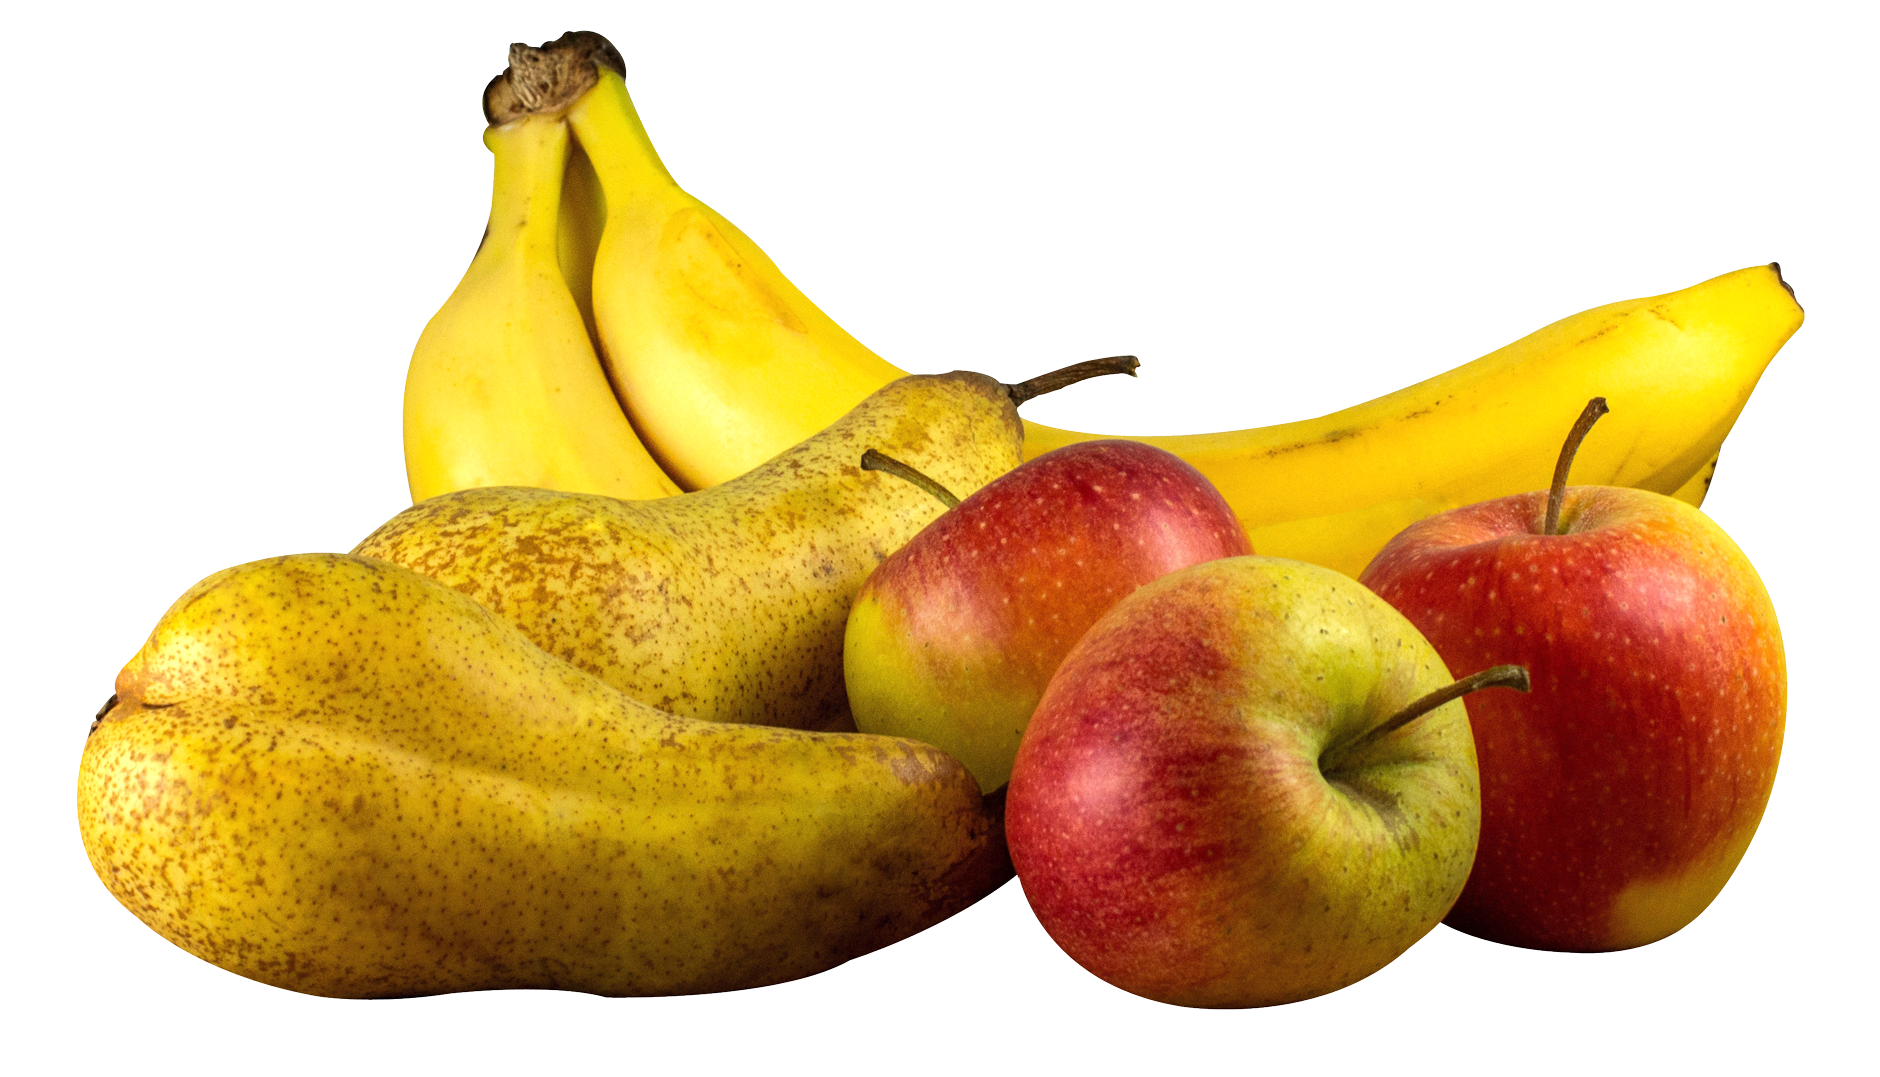 fruits png hd transparent fruits hdpng images pluspng